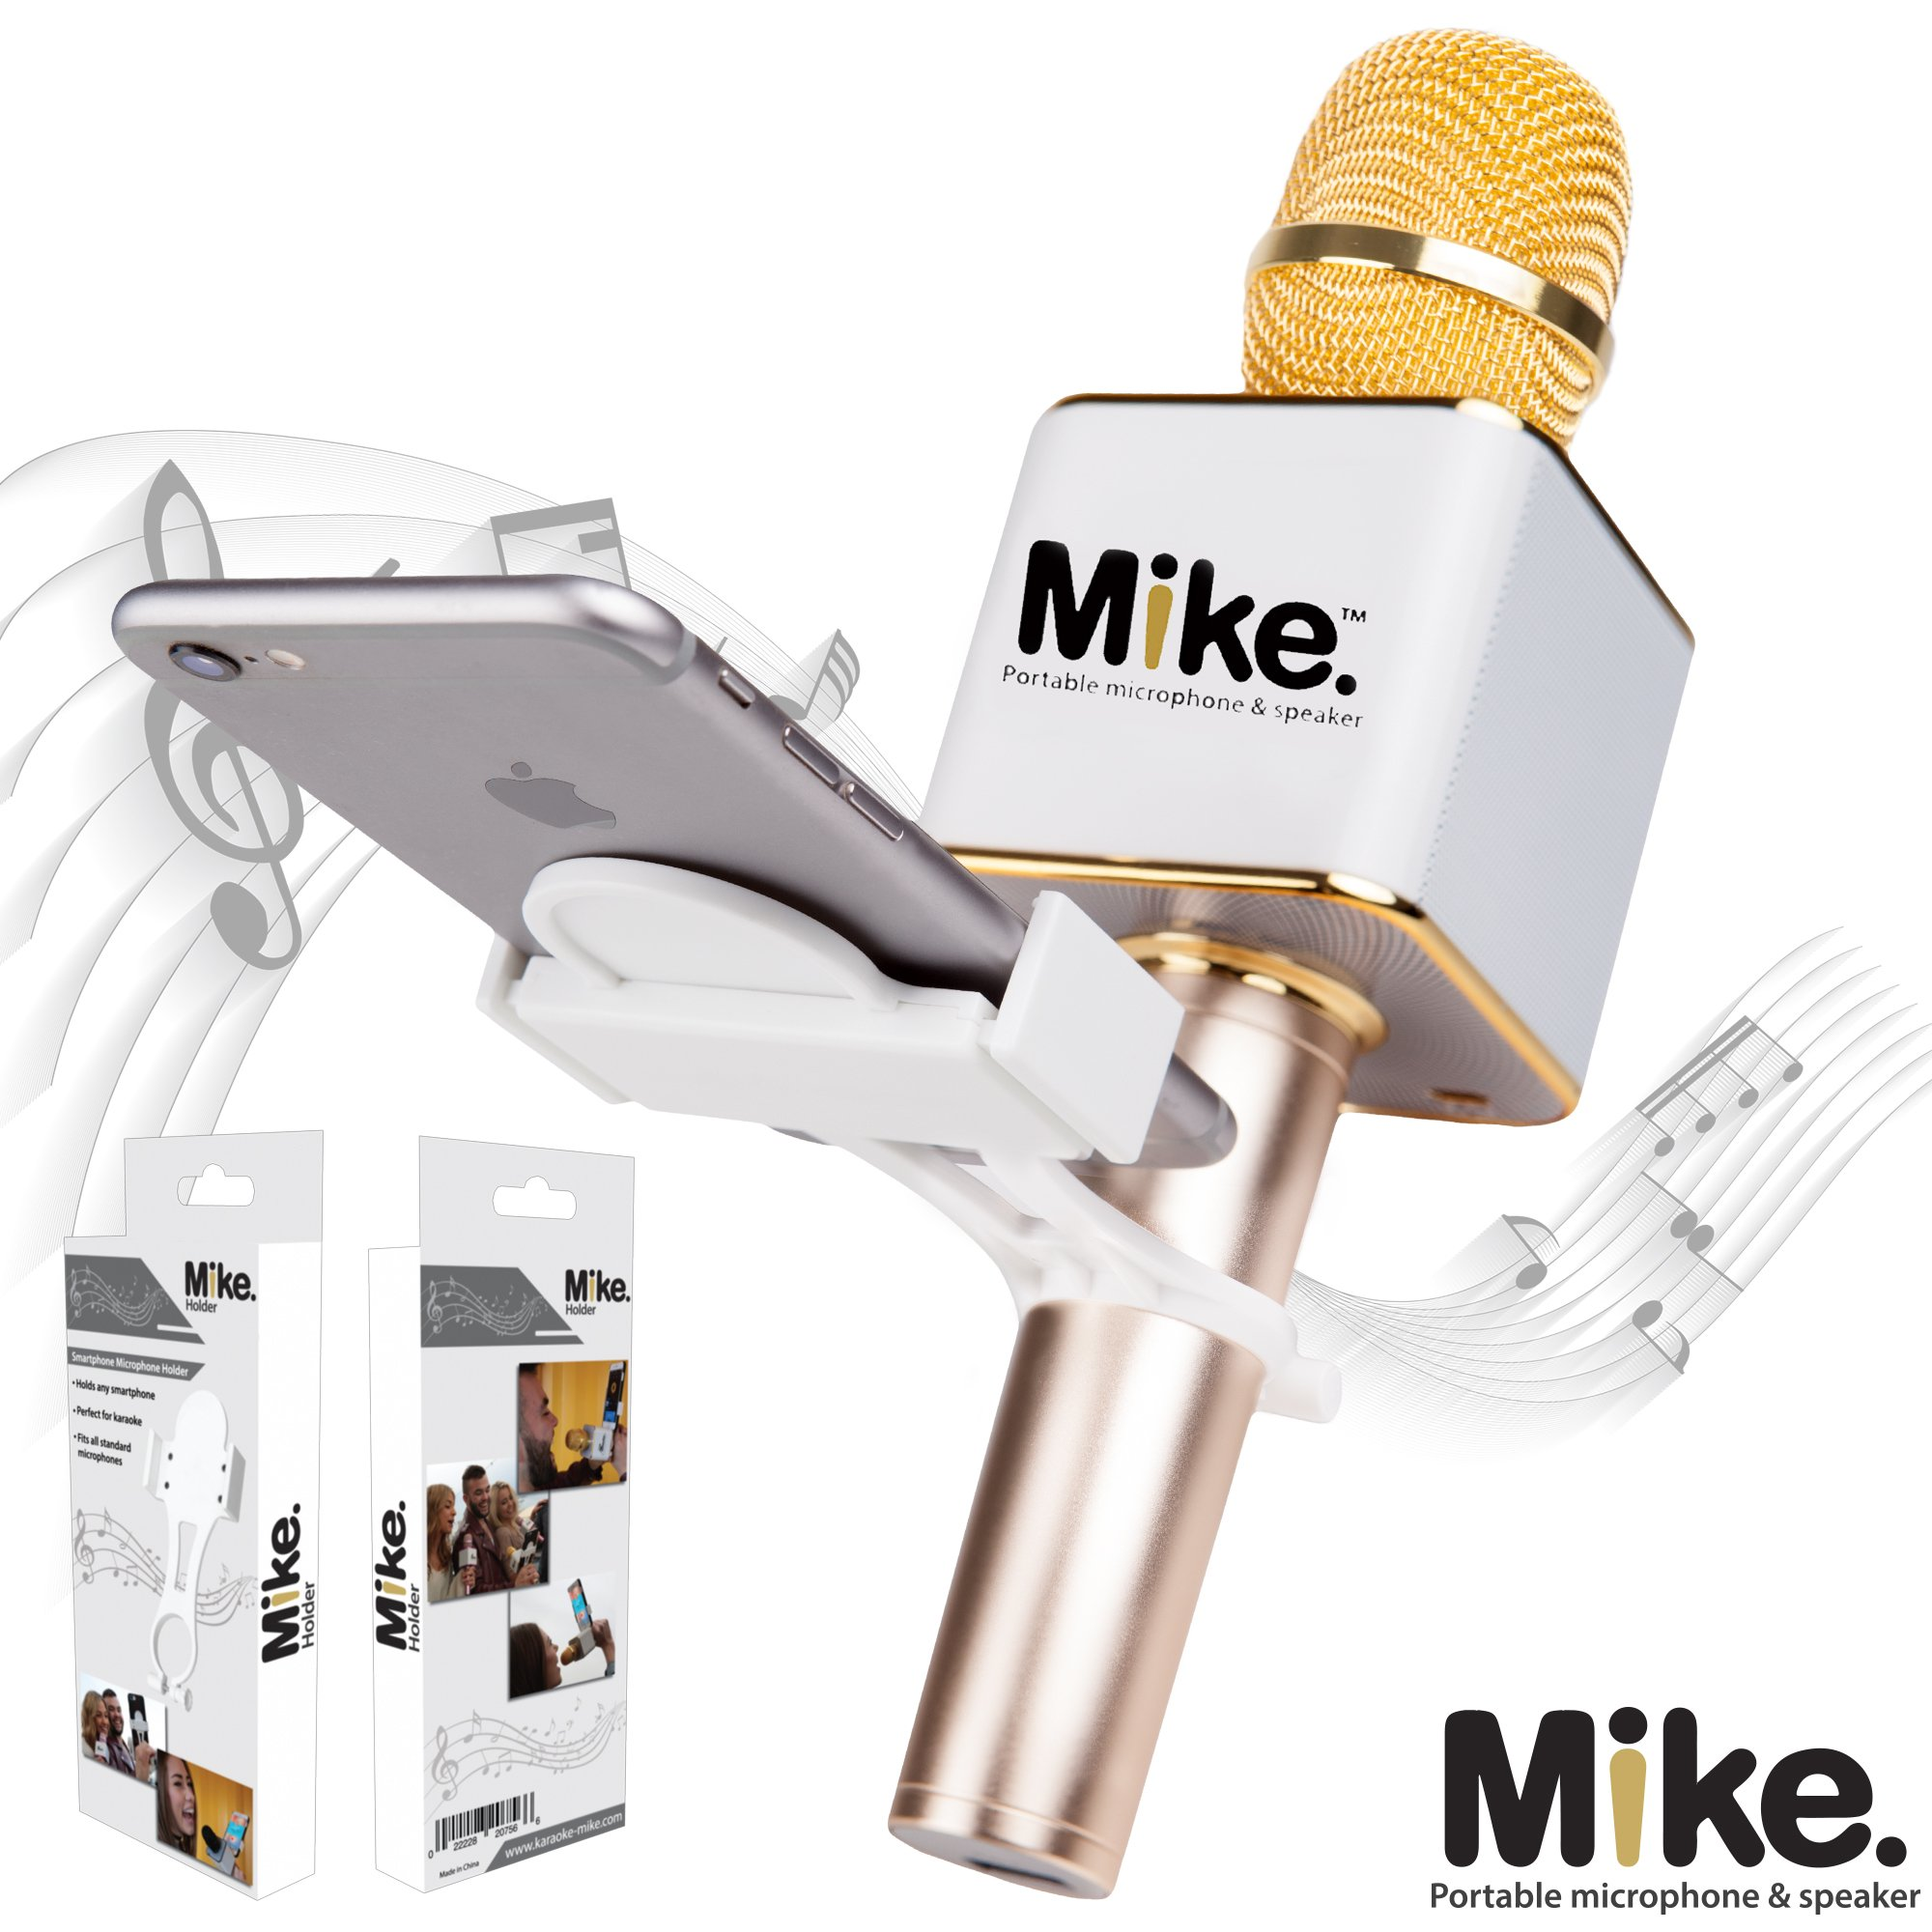 Karaoke-Mike Universal Microphone Cell Phone Holder: White Mount Clip Holder with Bracket For Q7, Q9, Handheld Wireless Microphones Just Add Summer